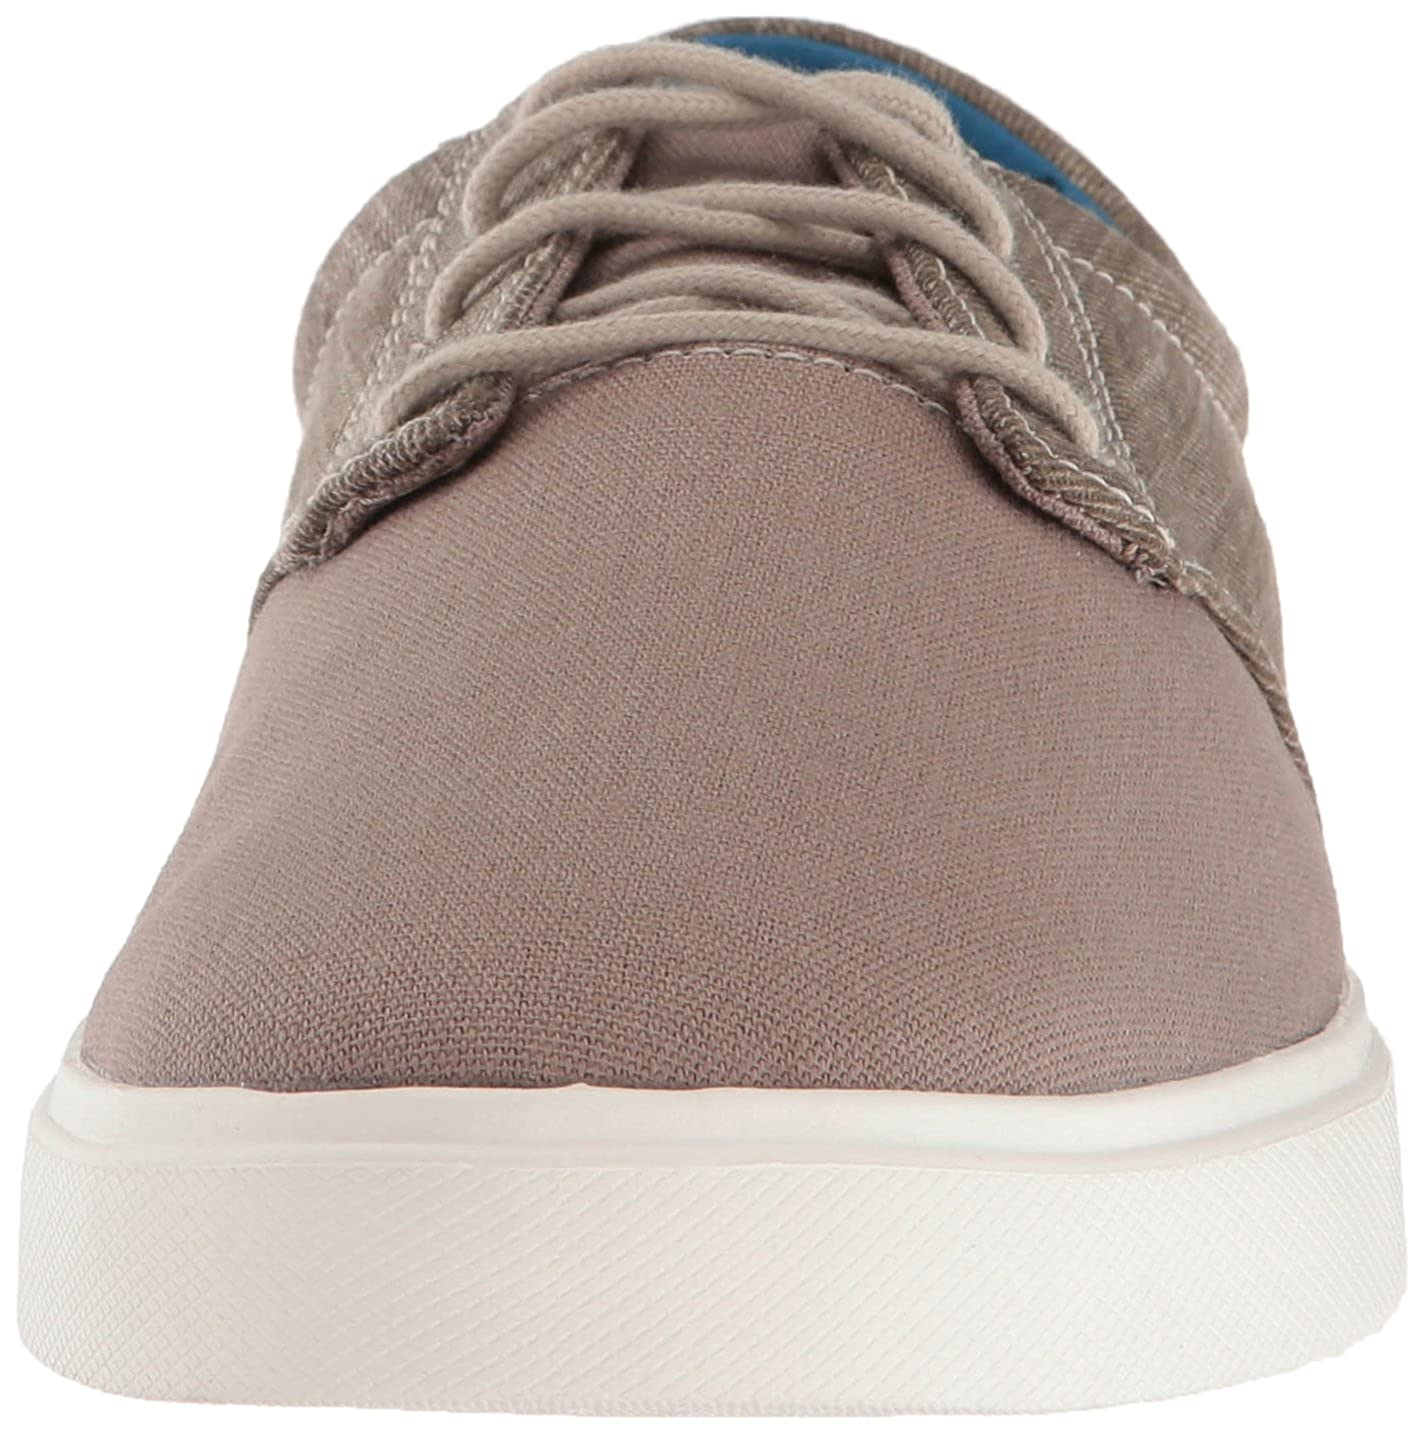 Crocs Herren Herren Herren Citilane Lace-up M Oxford B01H6NXAHS  4e6668